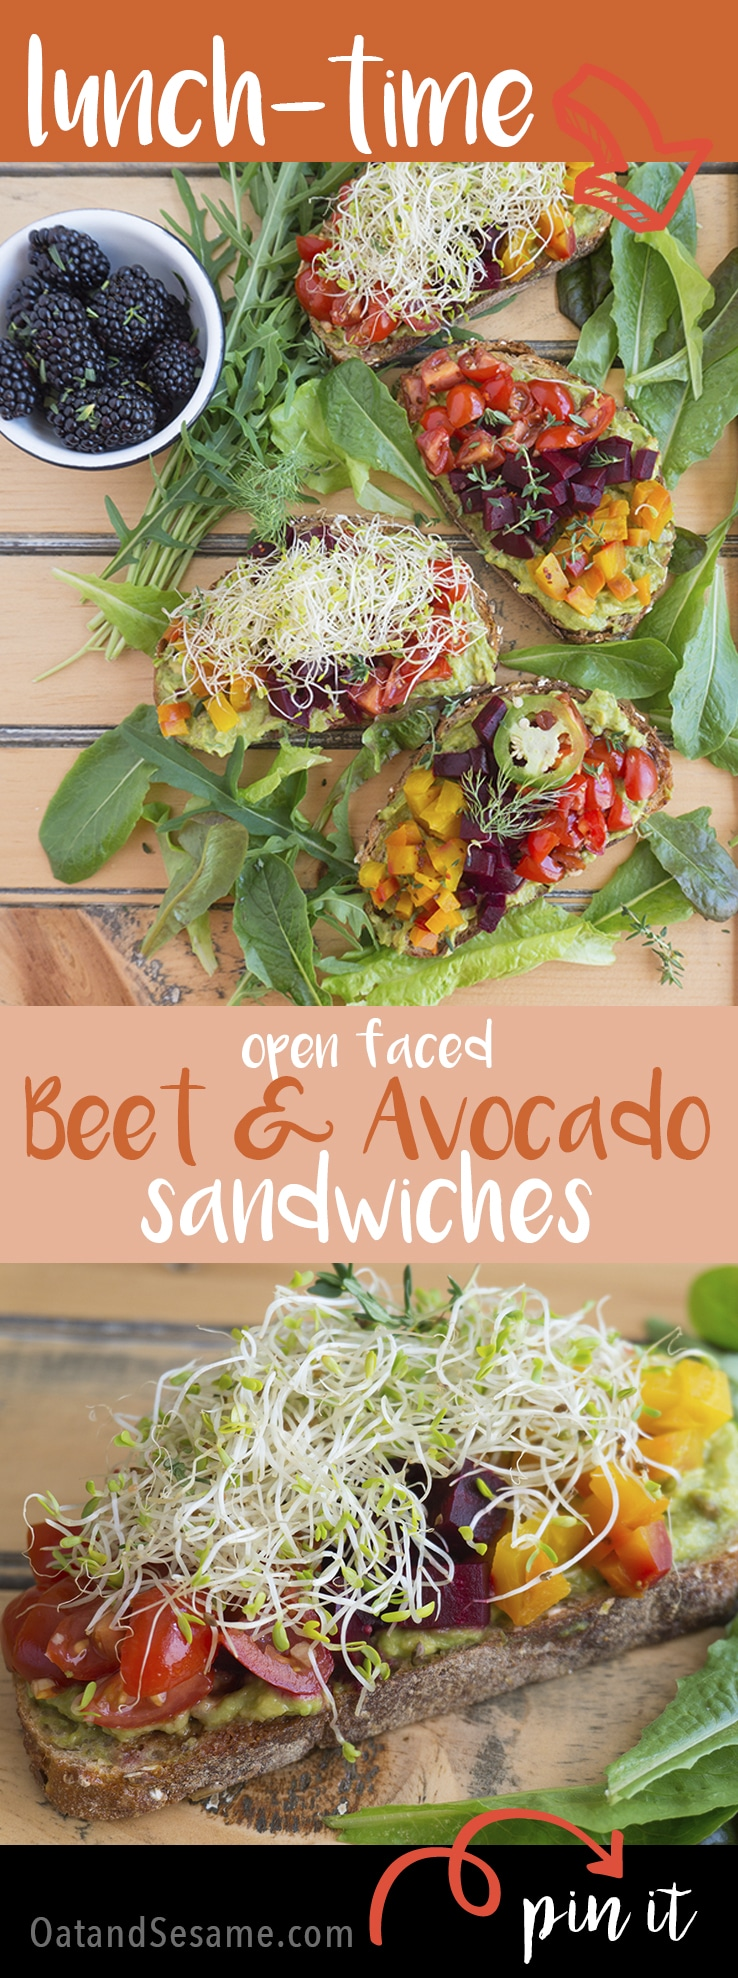 Beet and Avocado Open Faced Sandwiches - colorful and healthy this sandwich will grab your tastebuds and jumpstart your lunchtime routine! | #VEGETARIAN | #VEGAN | #LUNCH | #PLANTBASED | #HEALTHY | #Recipes at OatandSesame.com